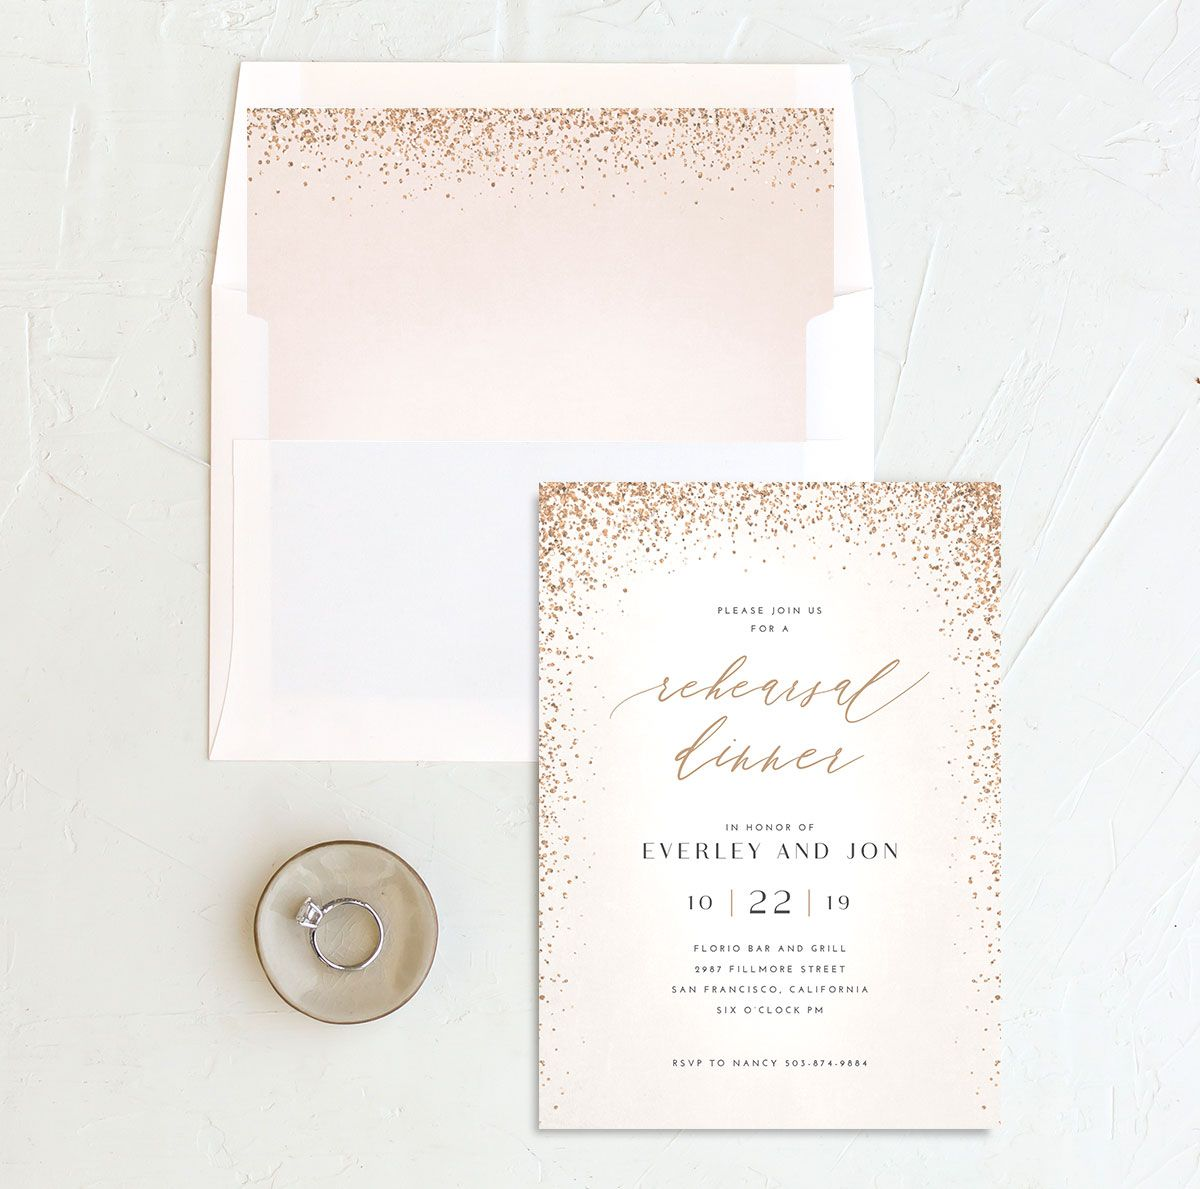 Sparkling Romance rehearsal dinner invitation cream with liner